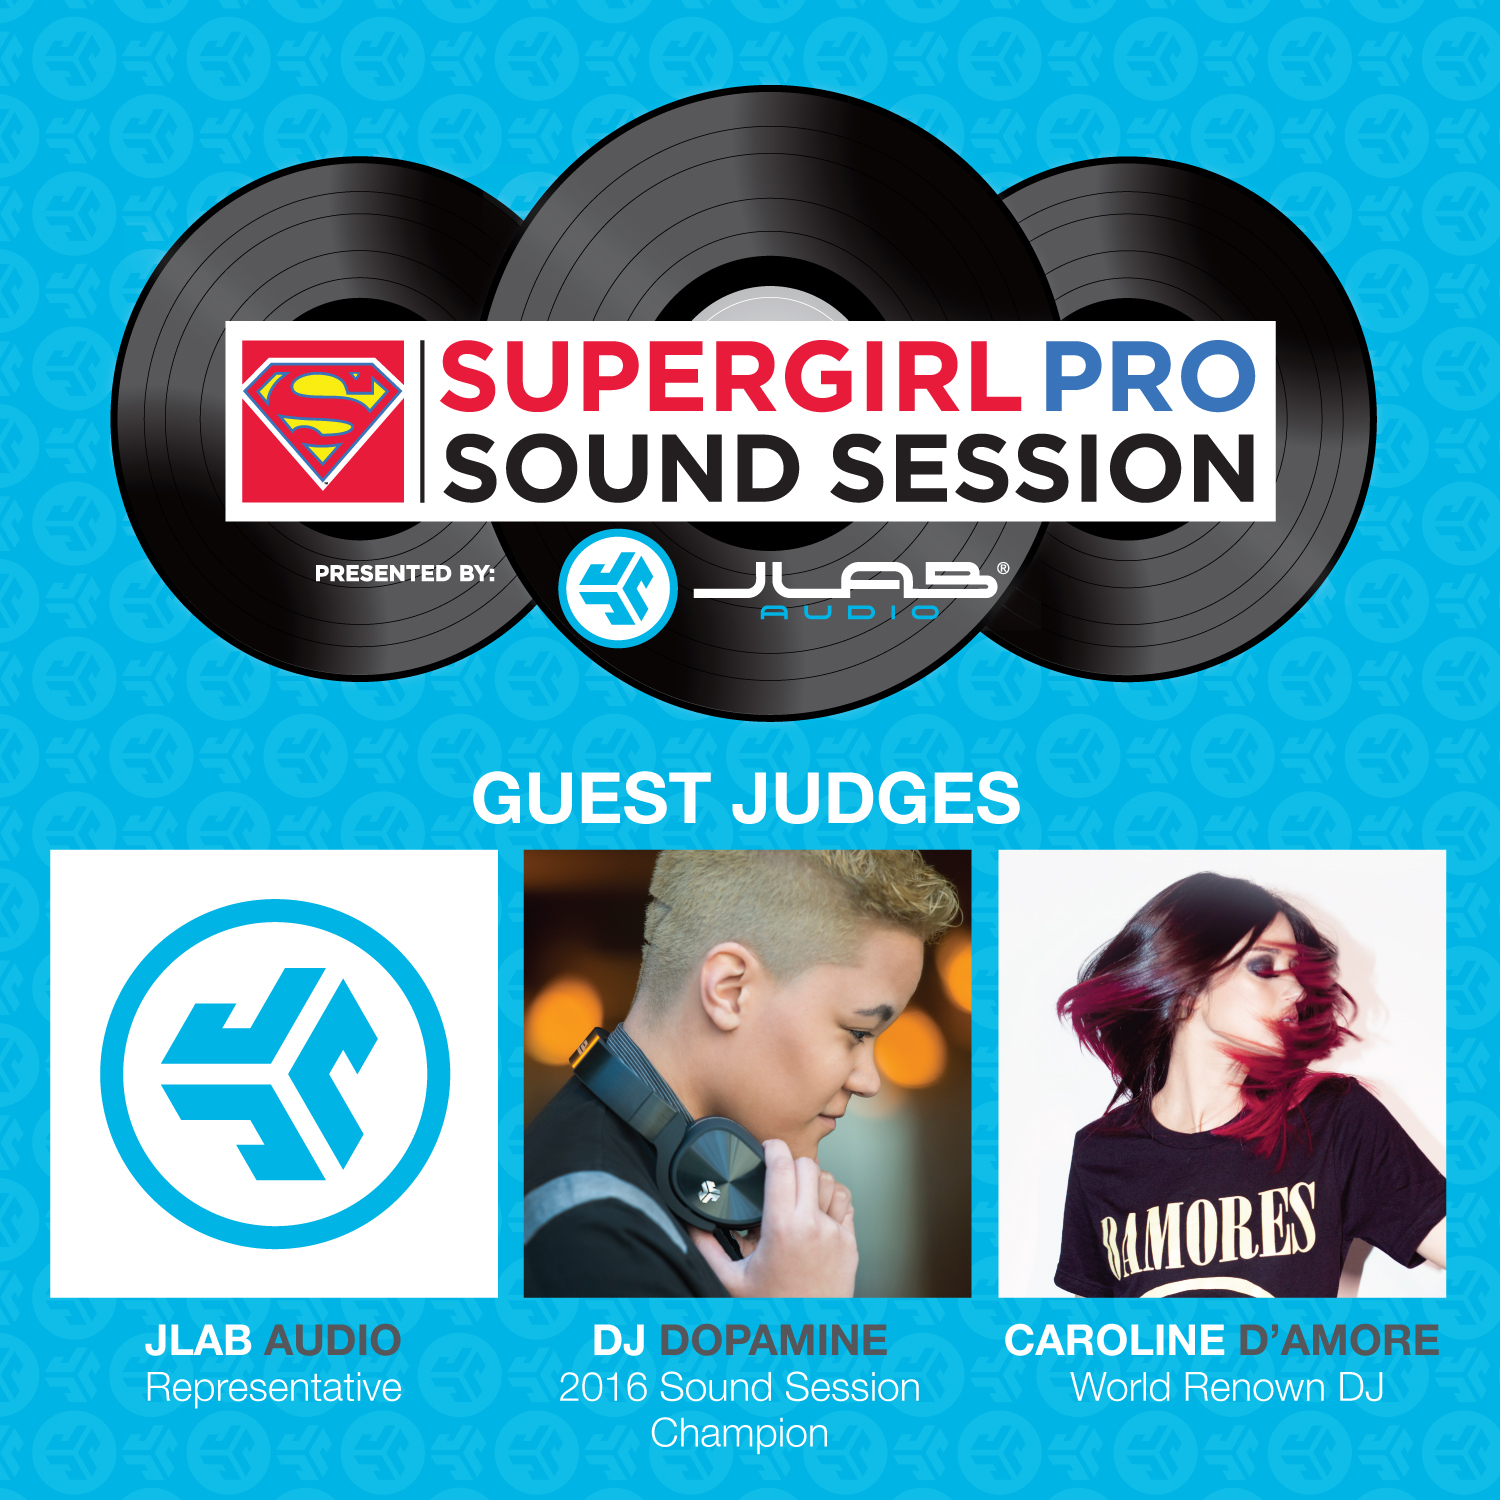 Supergirl PRO concert Flyers_Guest judges